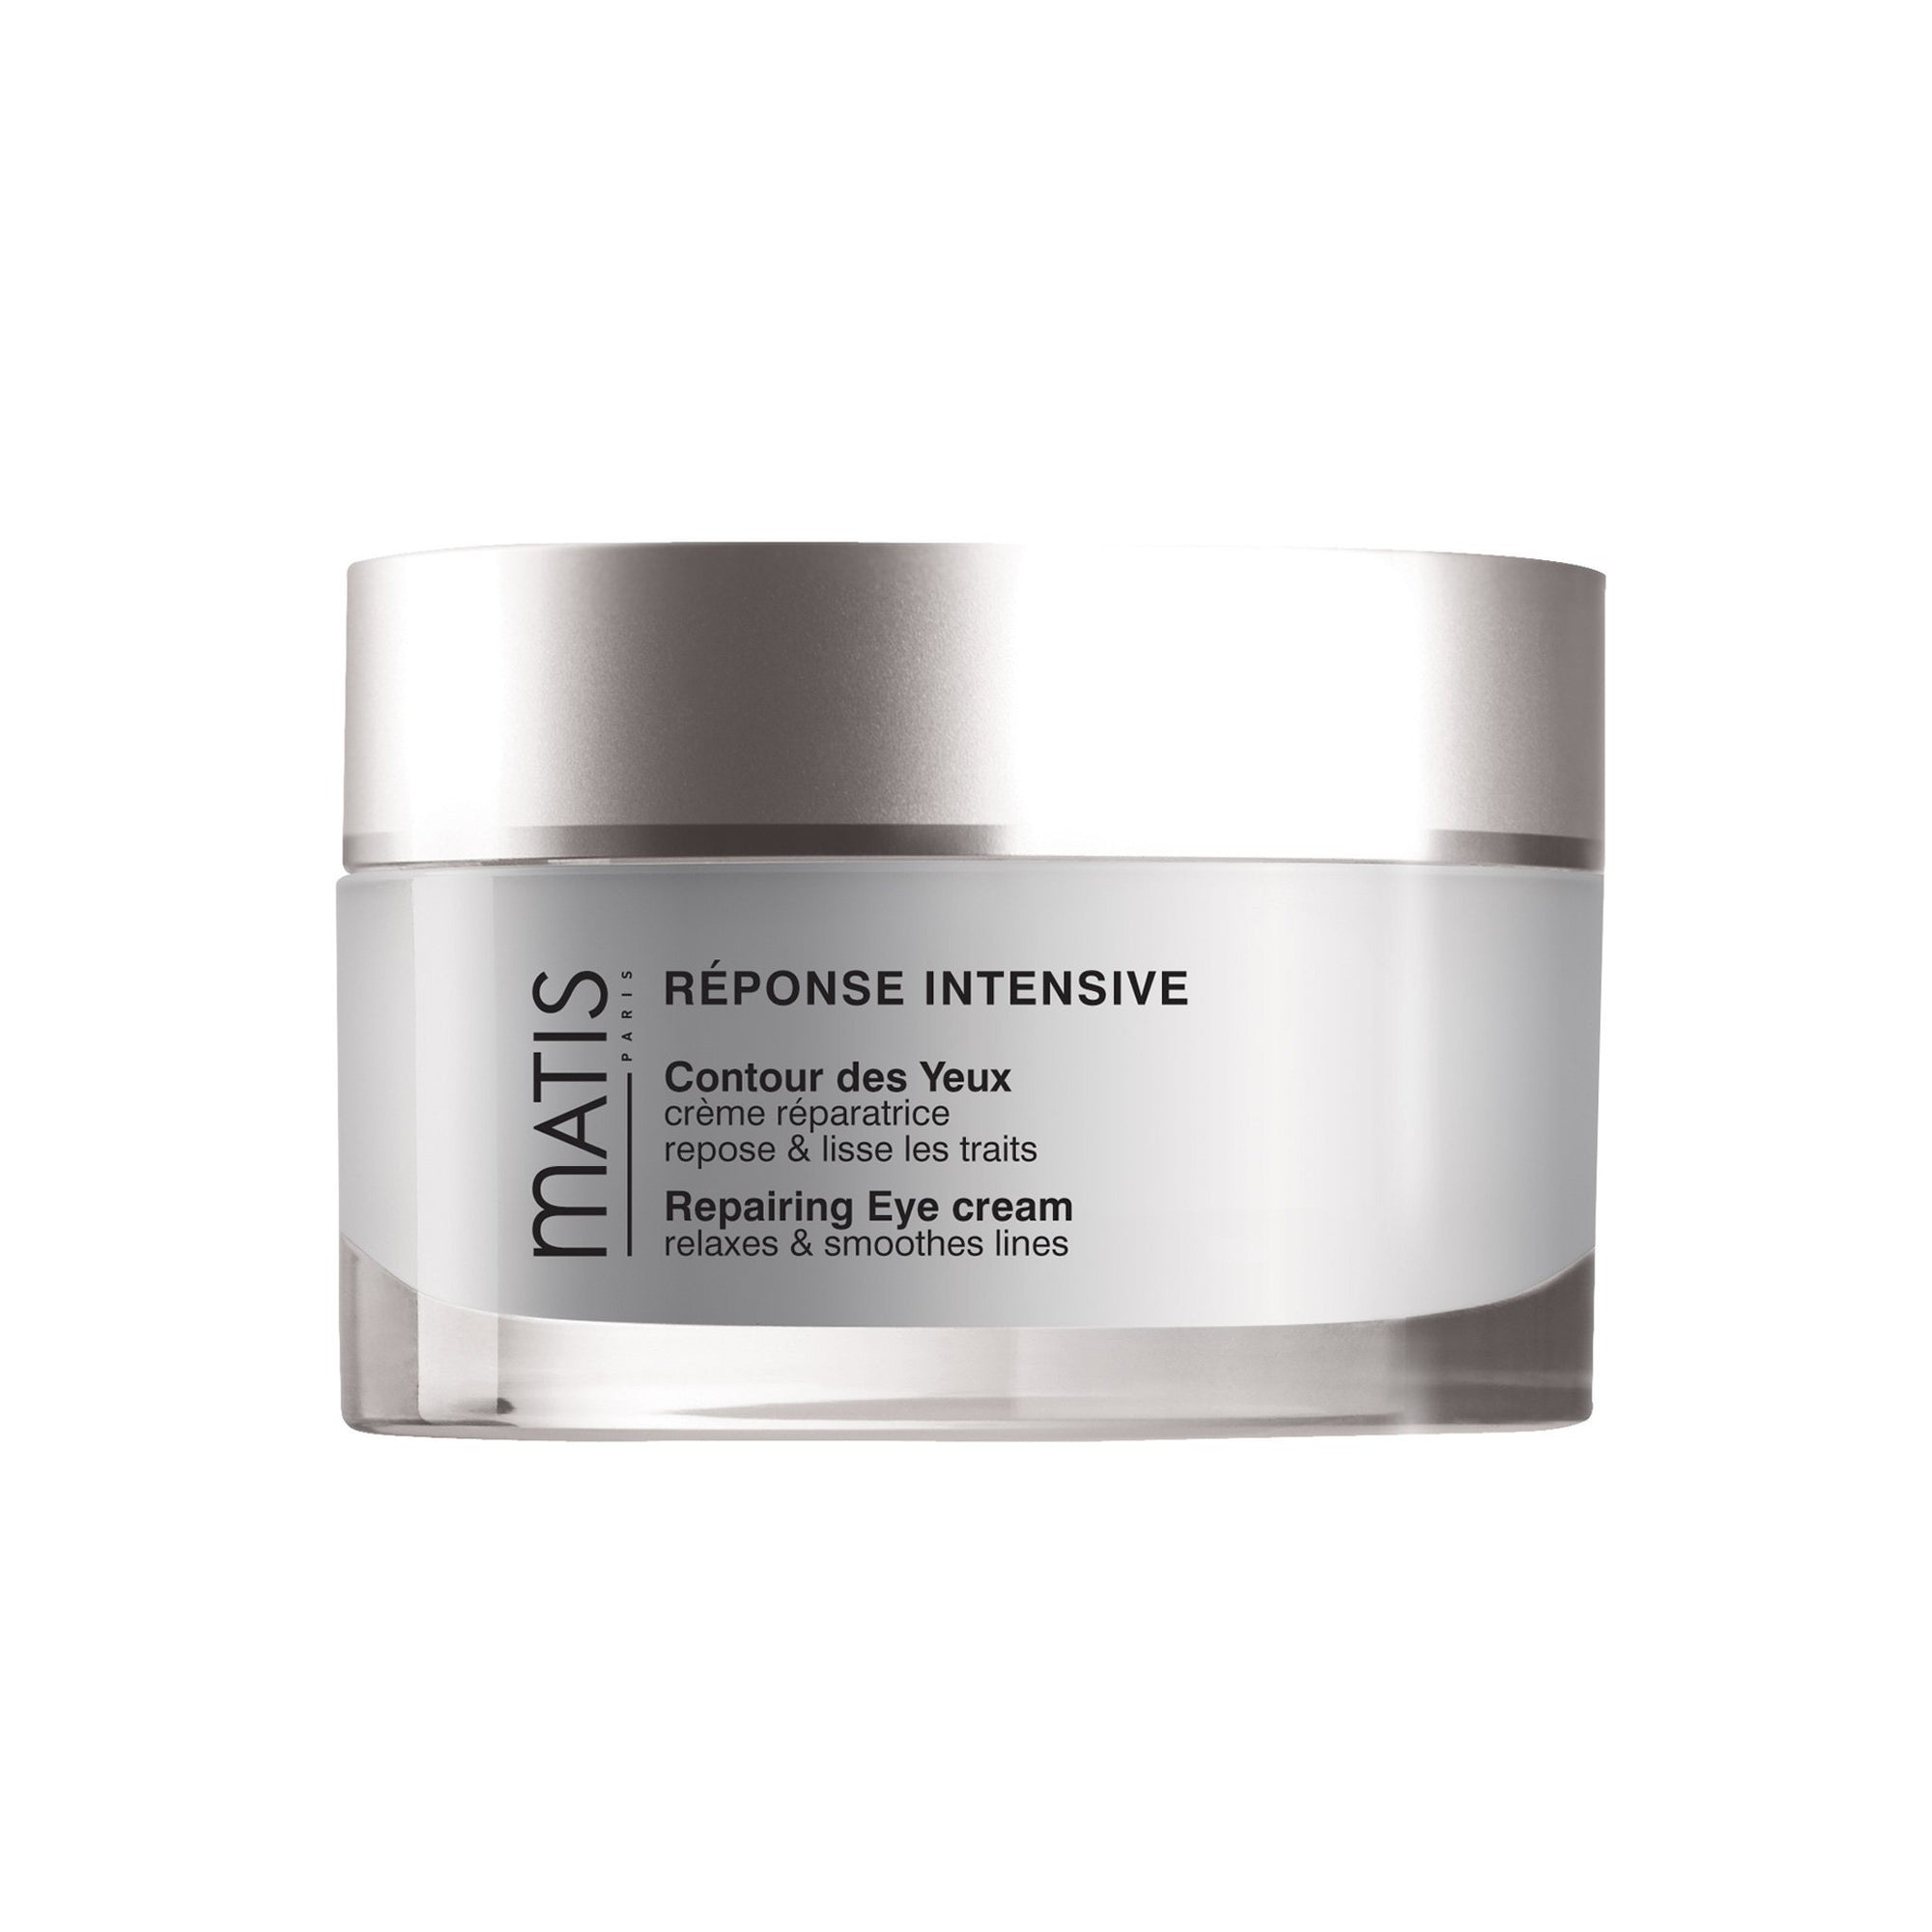 Matis Response Intensive Repairing Eye Cream 20ml